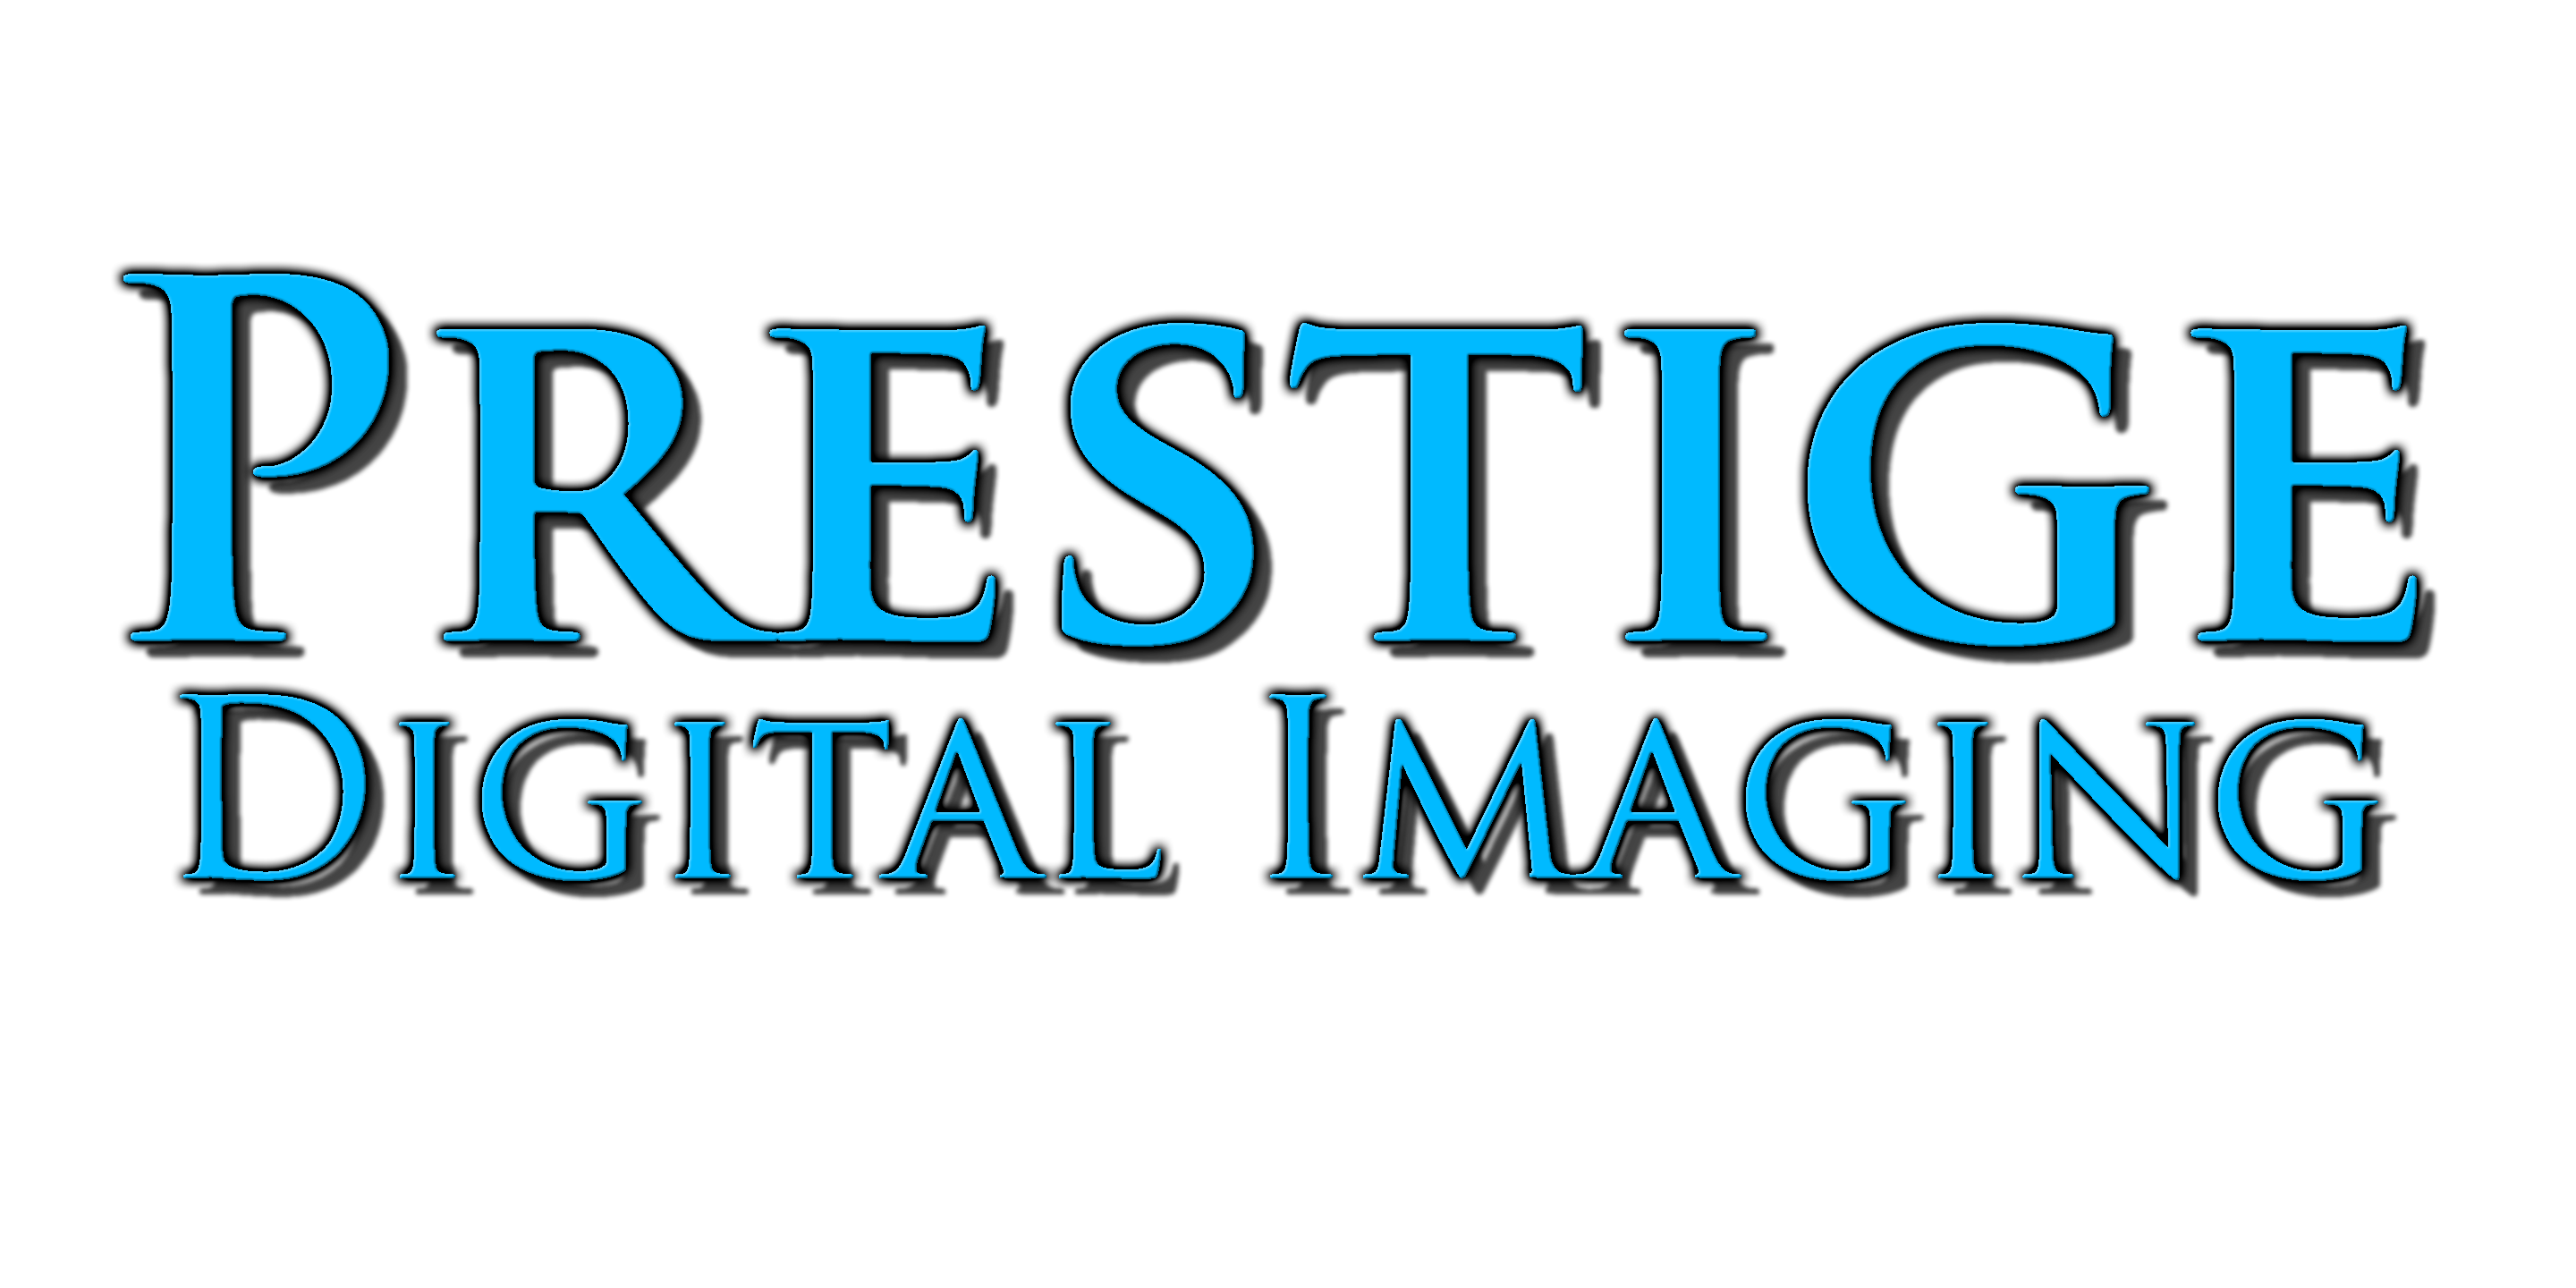 Prestige Digital Imaging